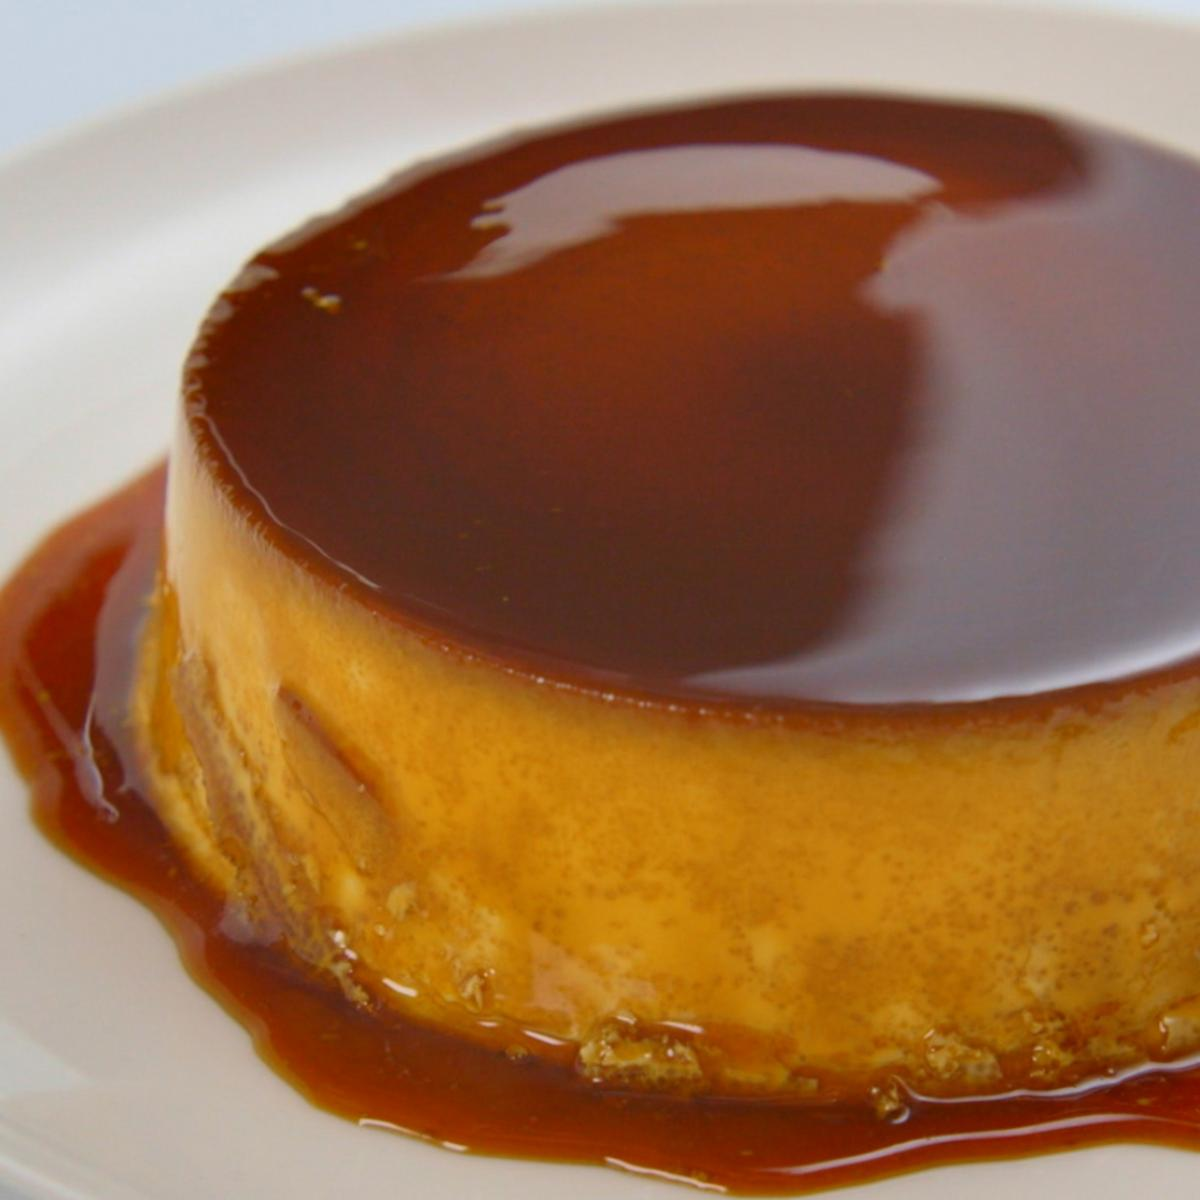 A picture of Delia's Creme Caramel recipe